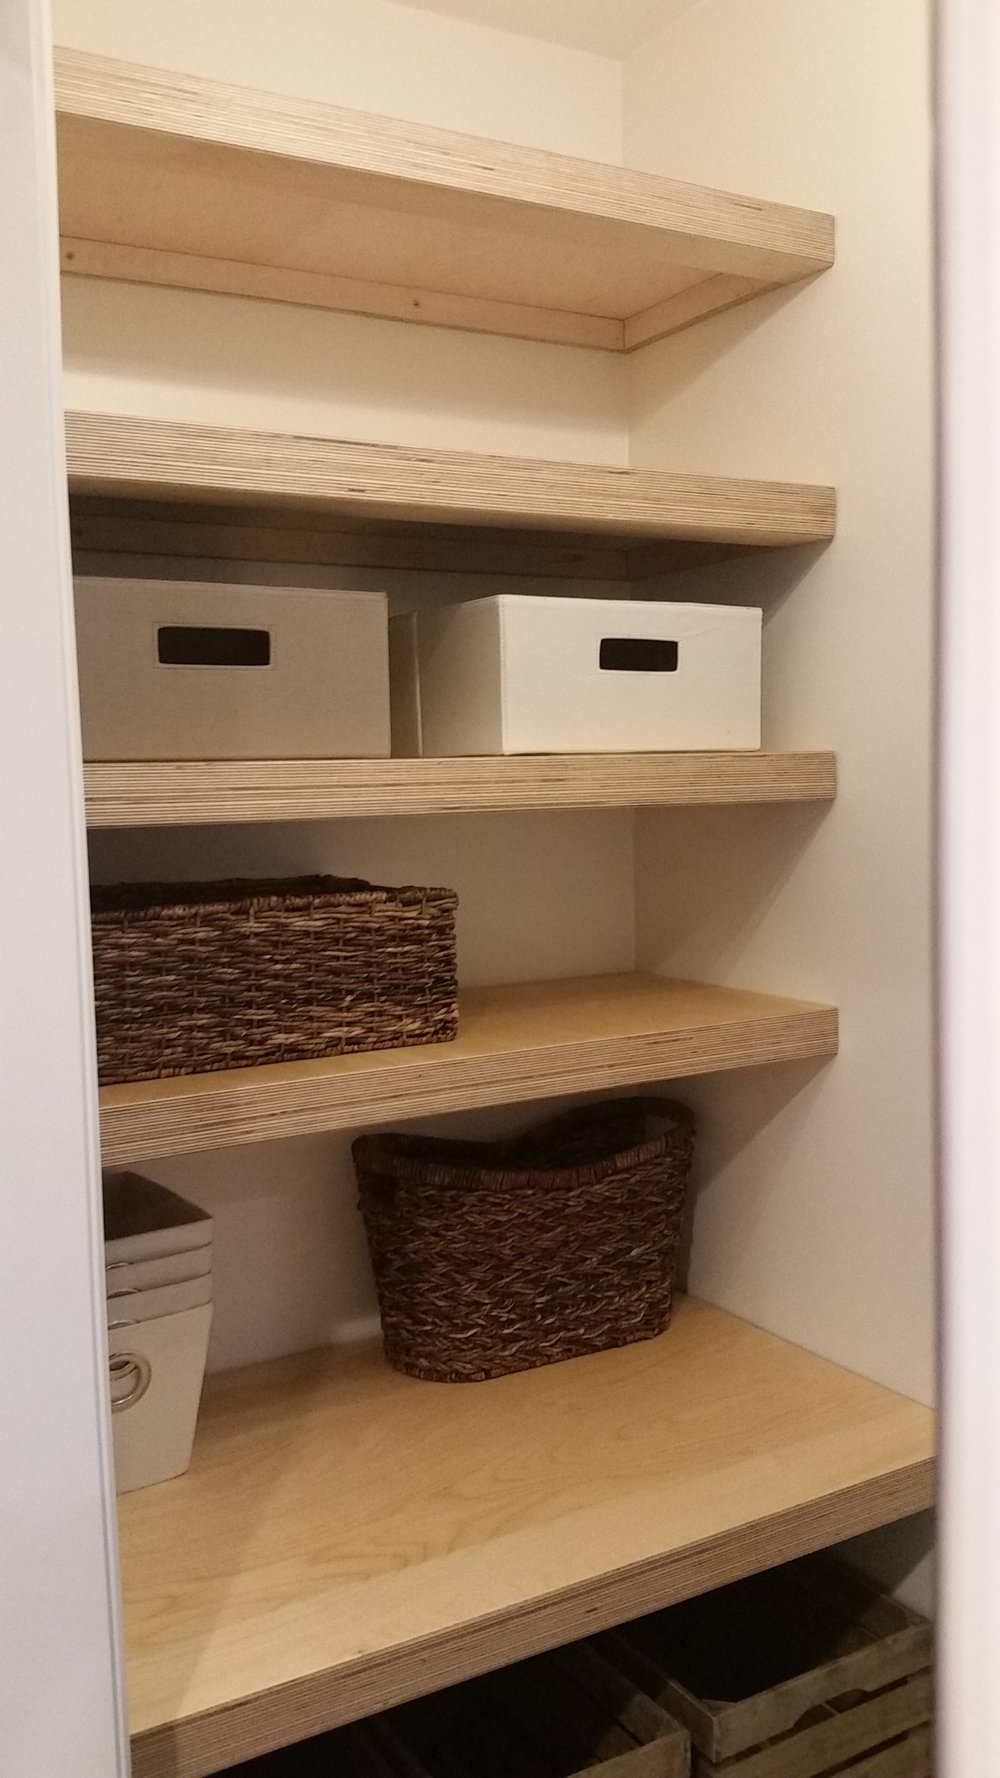 Built in Birch plywood shelves